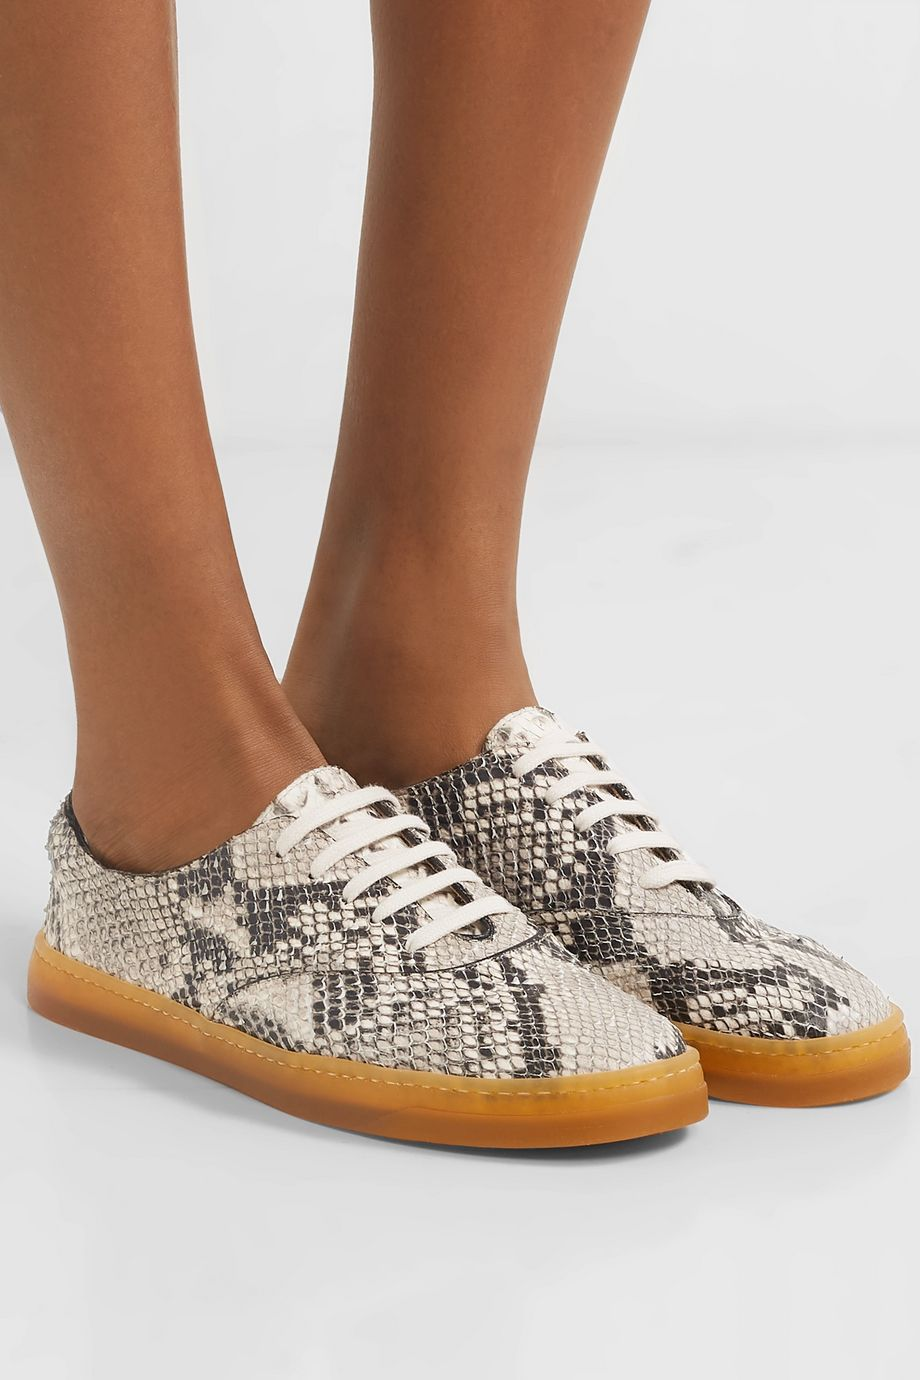 Gabriela Hearst Marcello snake-effect leather sneakers